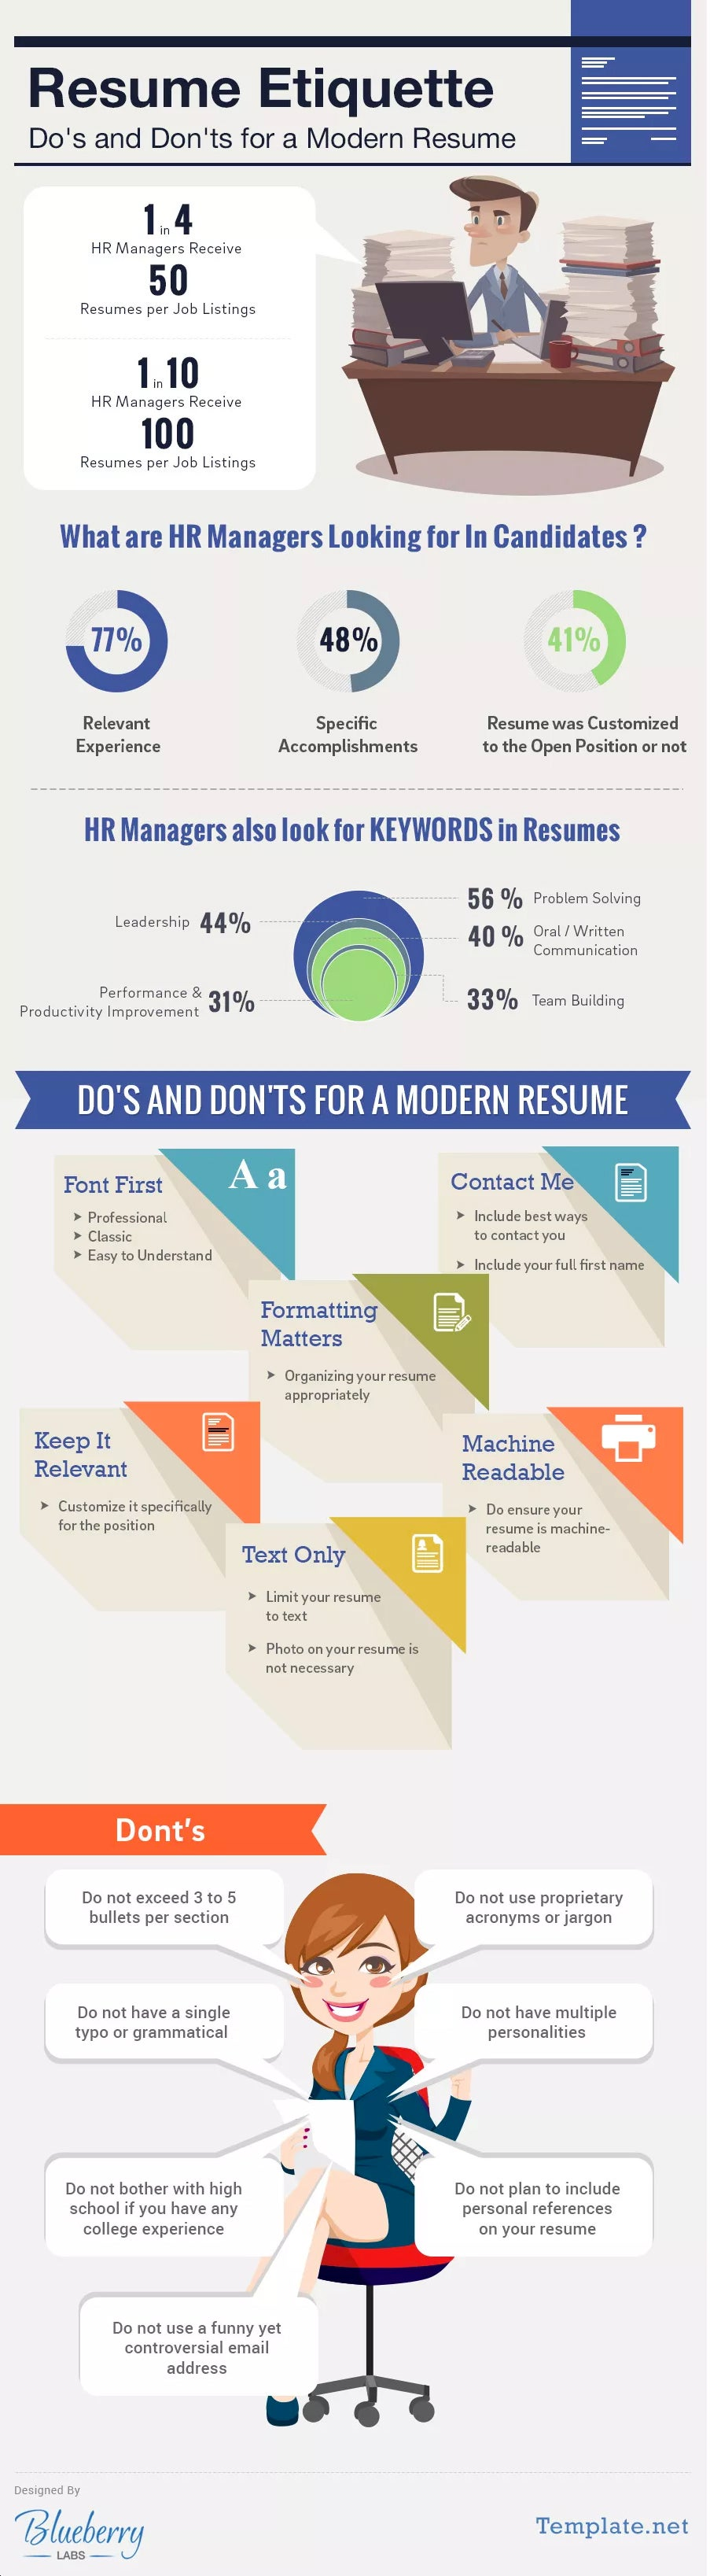 the do s and don ts of the modern resumé infographic